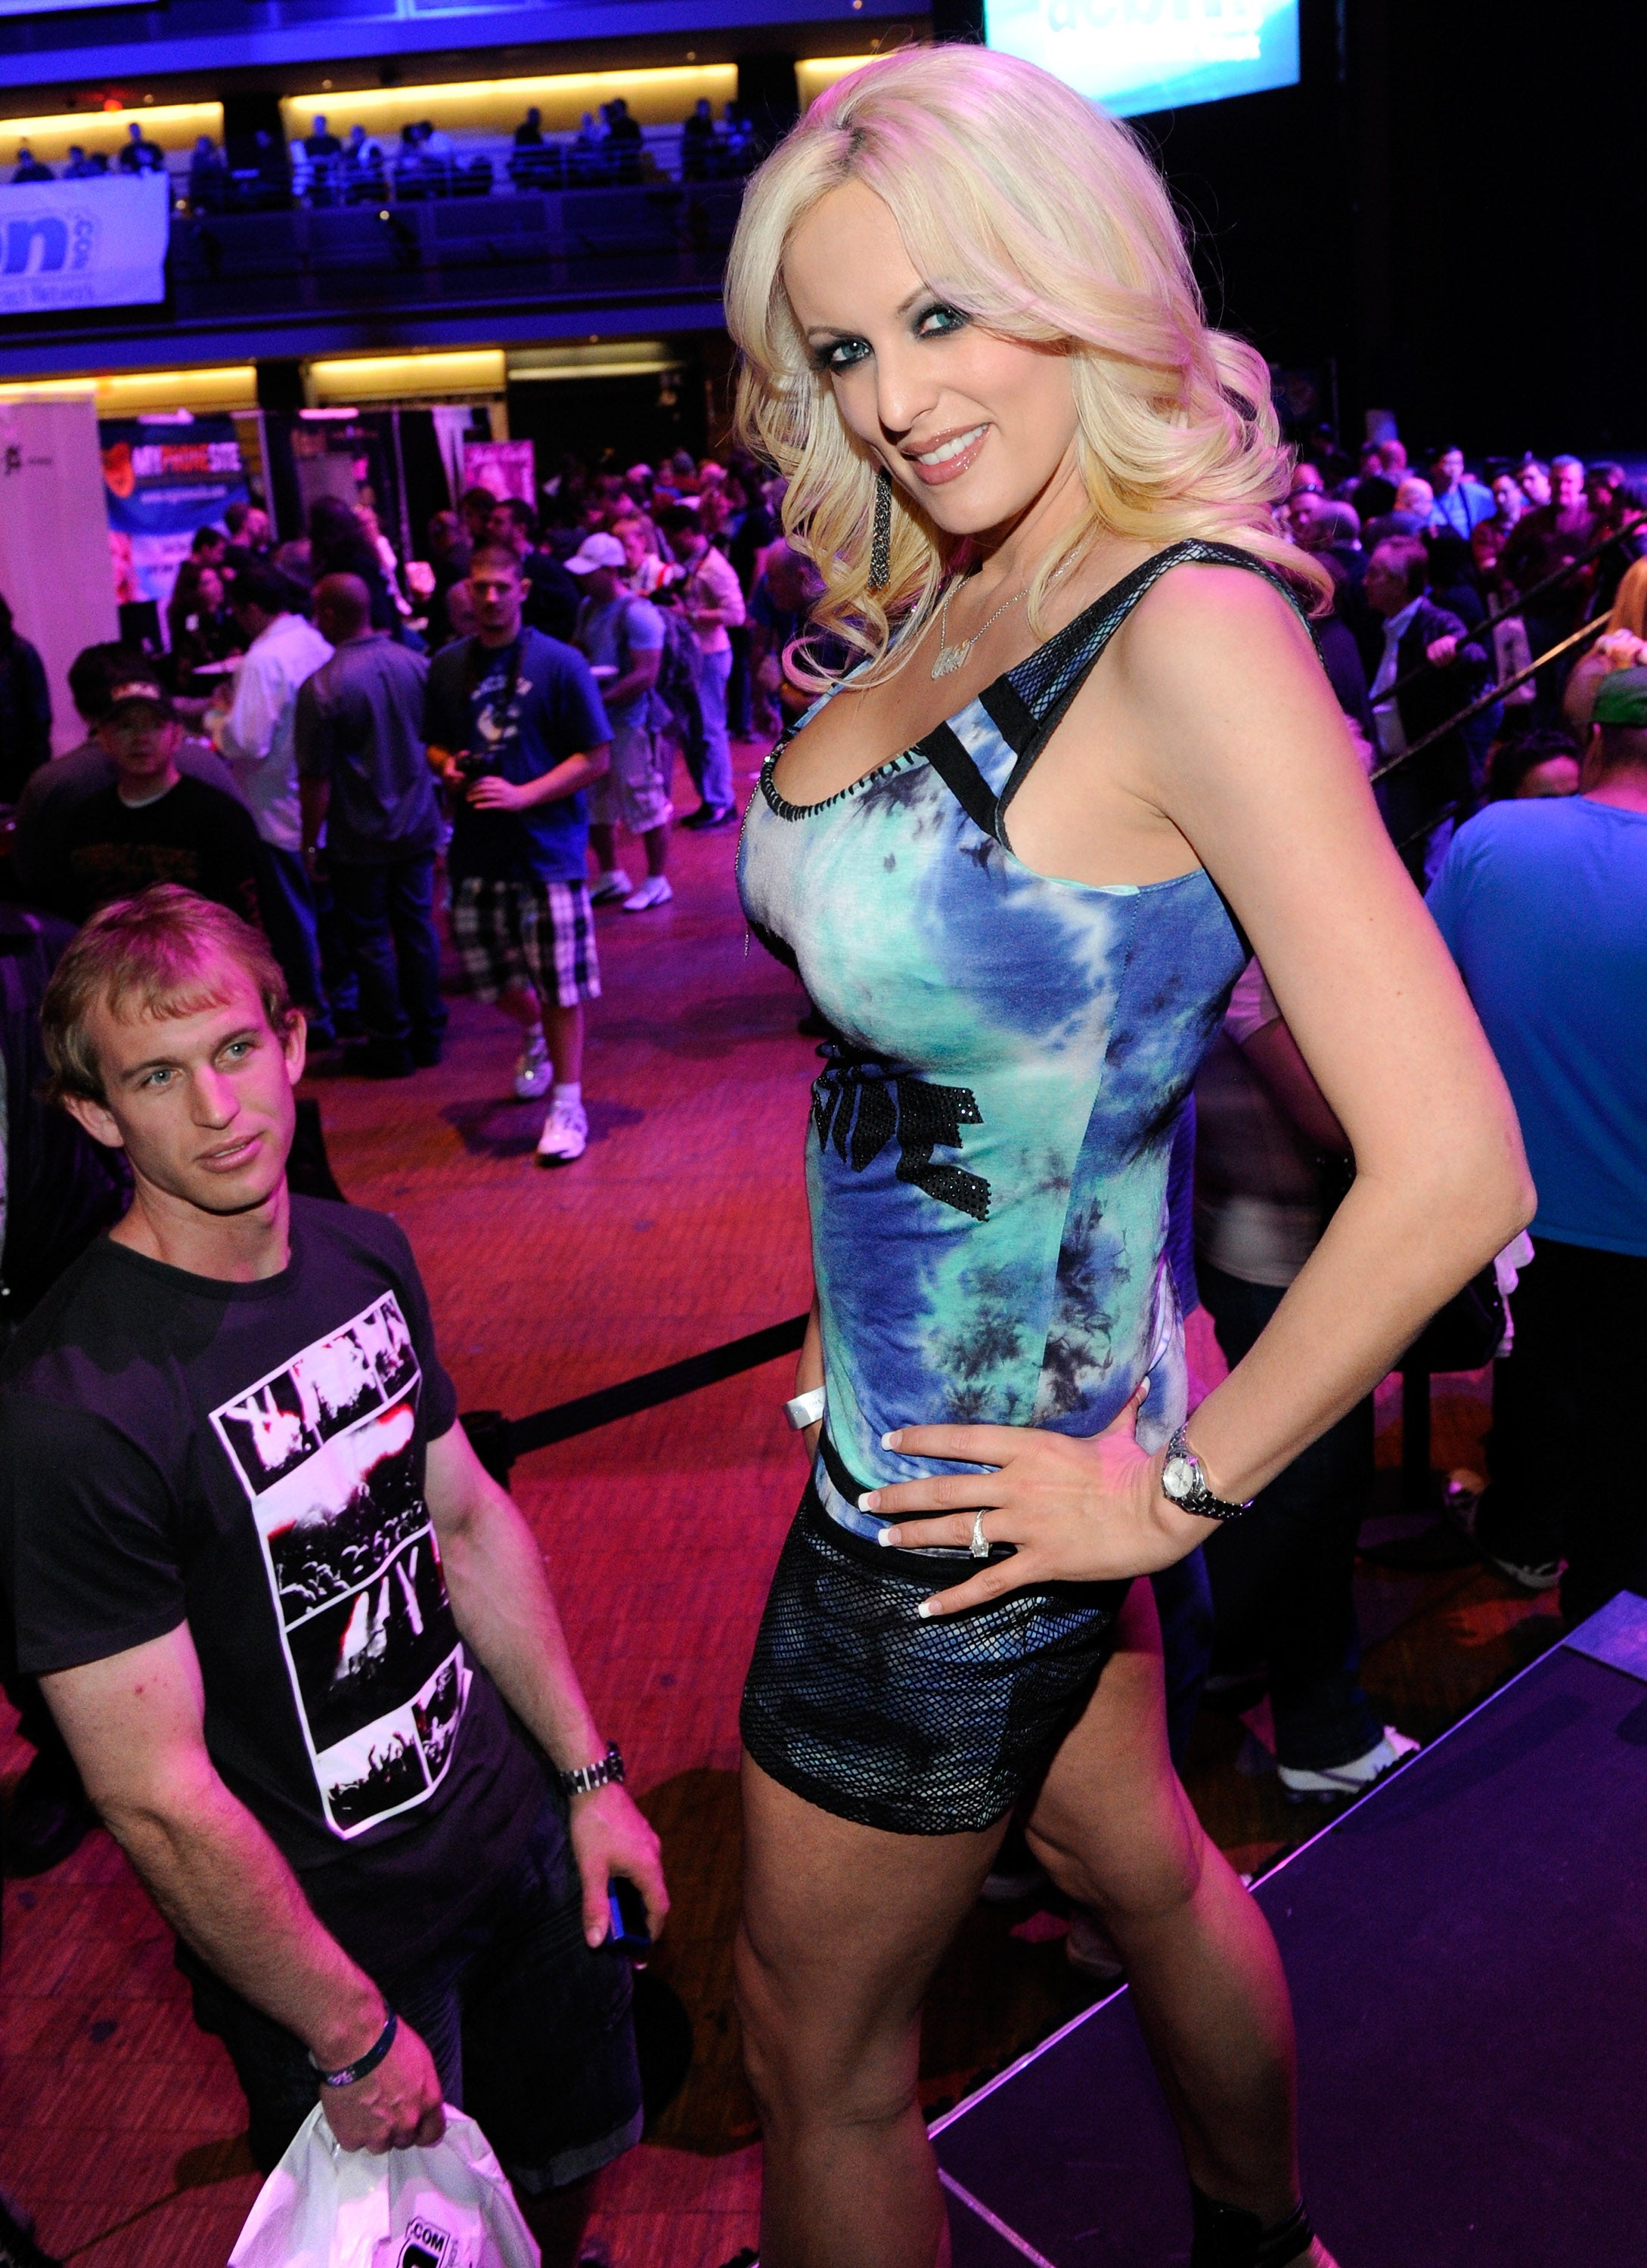 Stormy Daniels at the 2012 AVN Adult Entertainment Expo in Las Vegas.